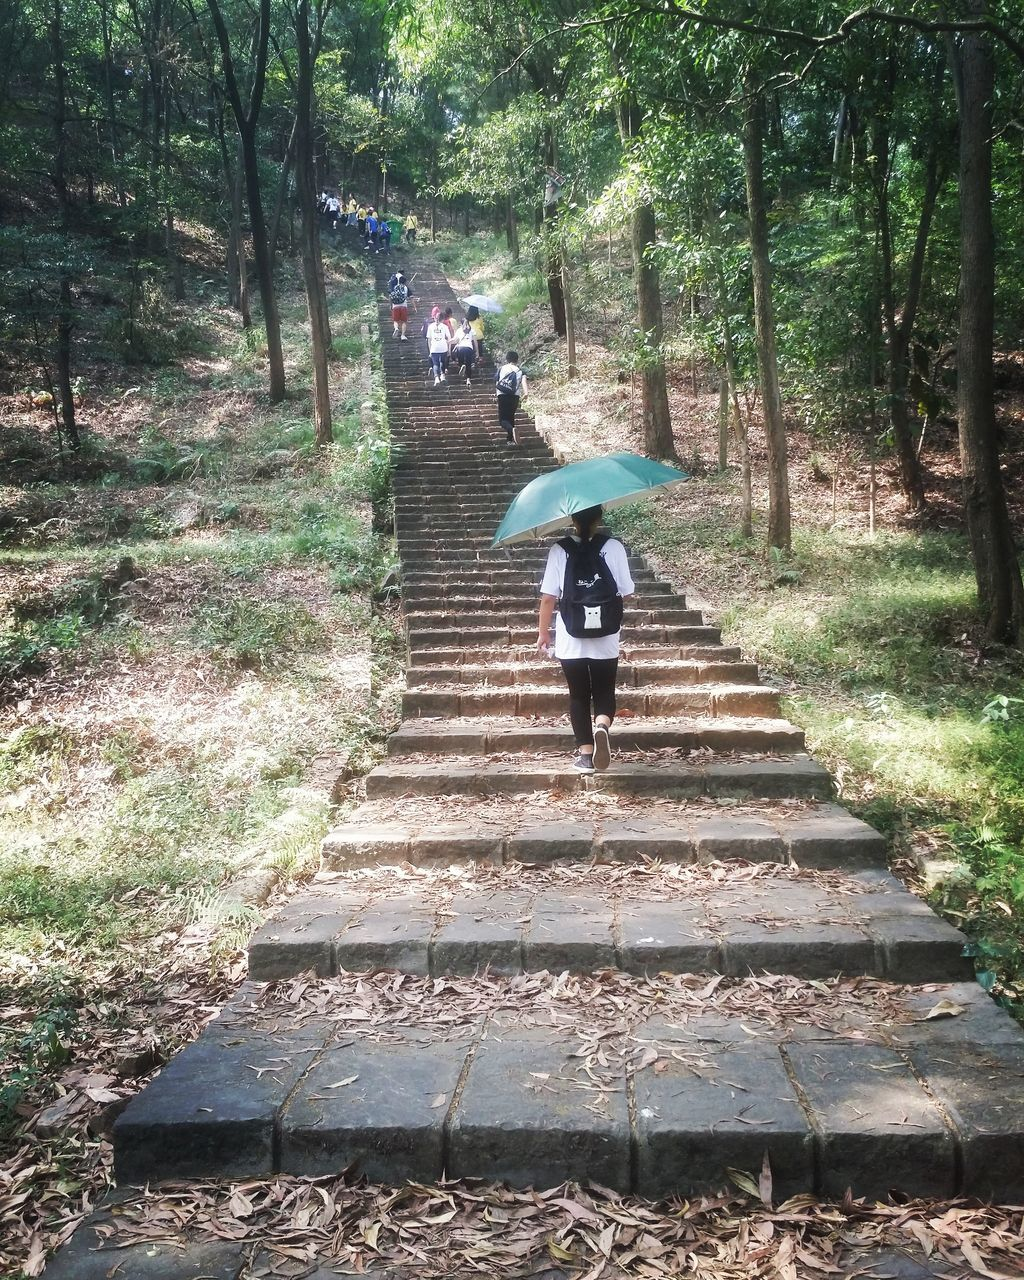 steps, steps and staircases, real people, lifestyles, staircase, walking, full length, tree, the way forward, nature, day, leisure activity, one person, outdoors, motion, growth, forest, men, women, mammal, people